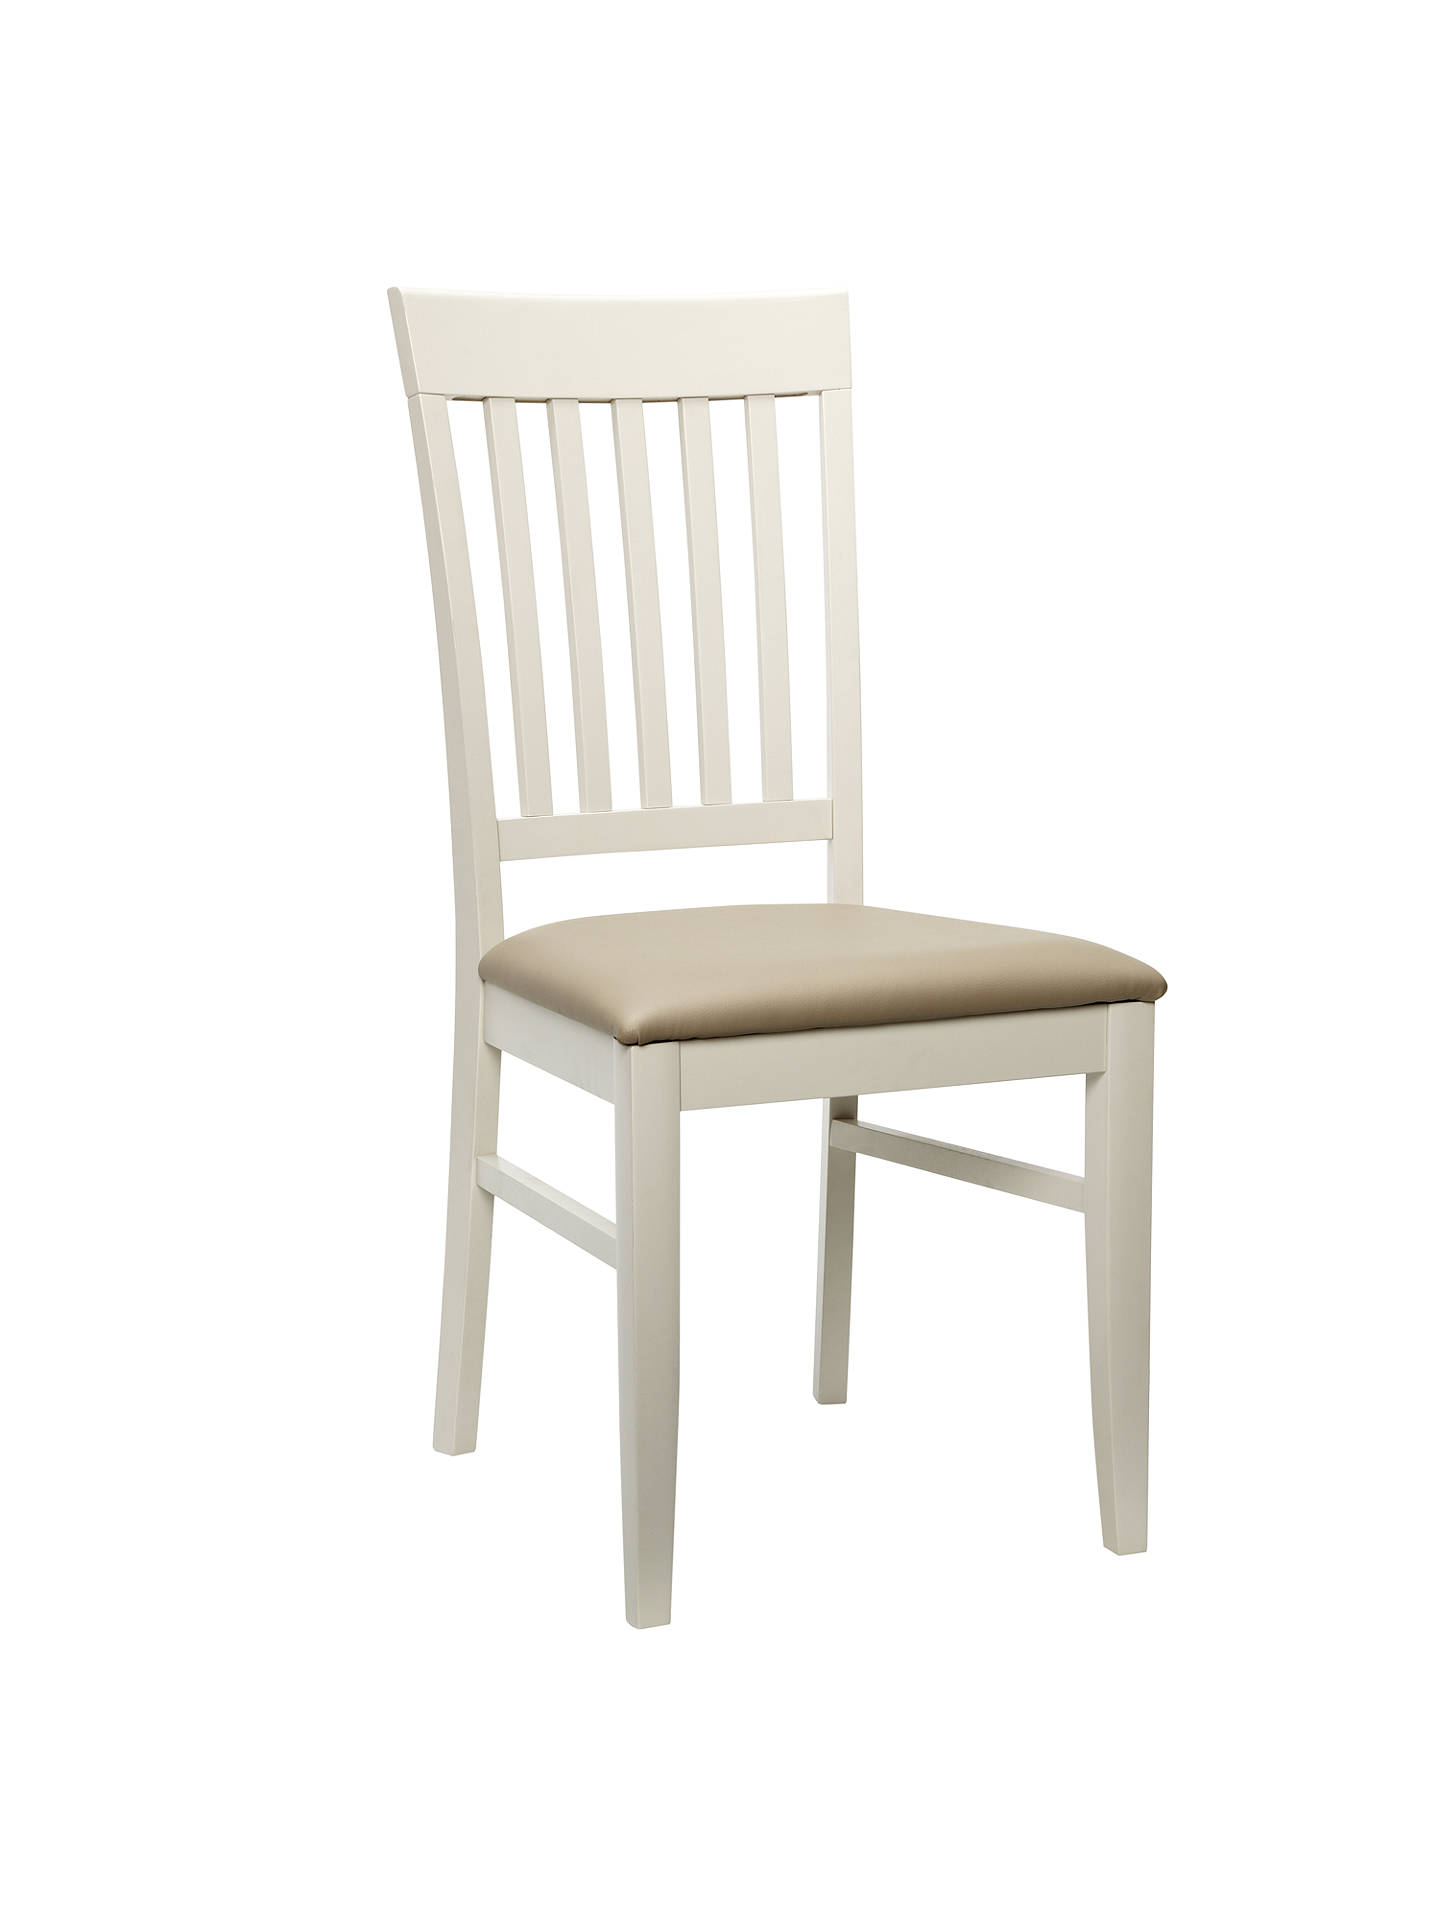 BuyJohn Lewis & Partners Alba Slat Back Dining Chair, Soft Grey/Oak Online at johnlewis.com